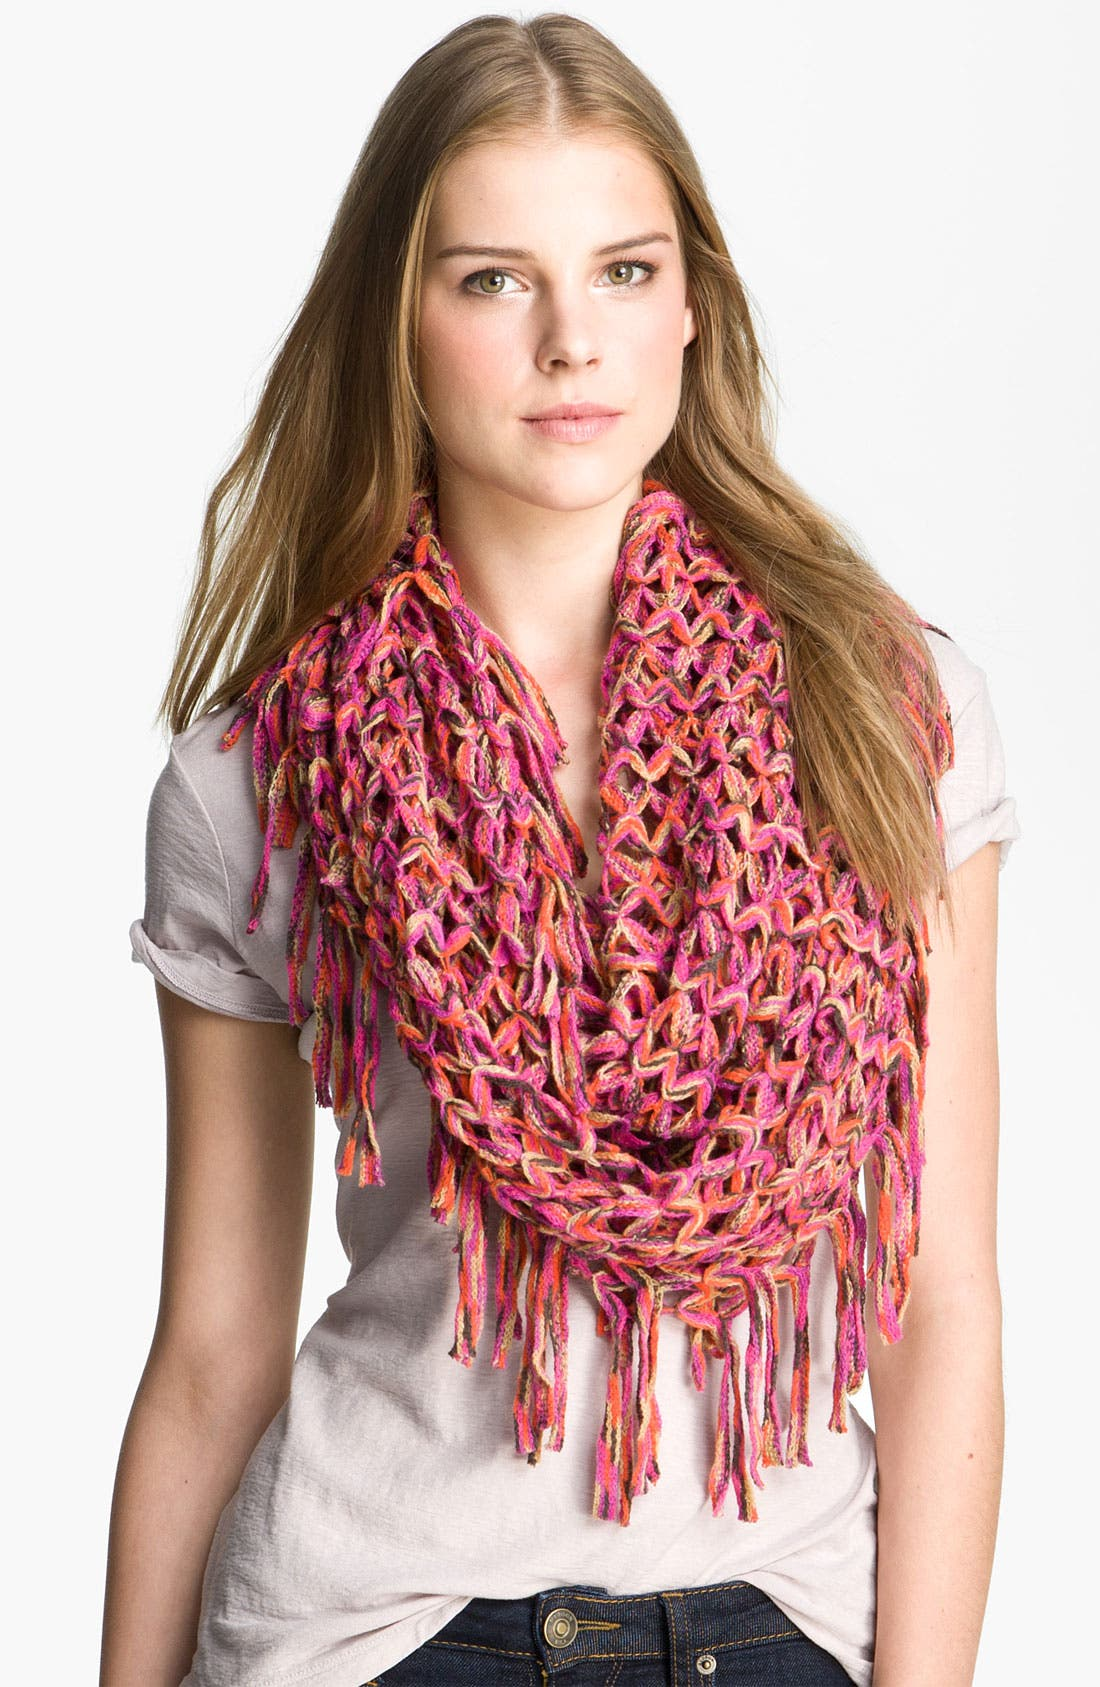 Alternate Image 1 Selected - Steve Madden 'Space Dyed Fishnet' Infinity Scarf